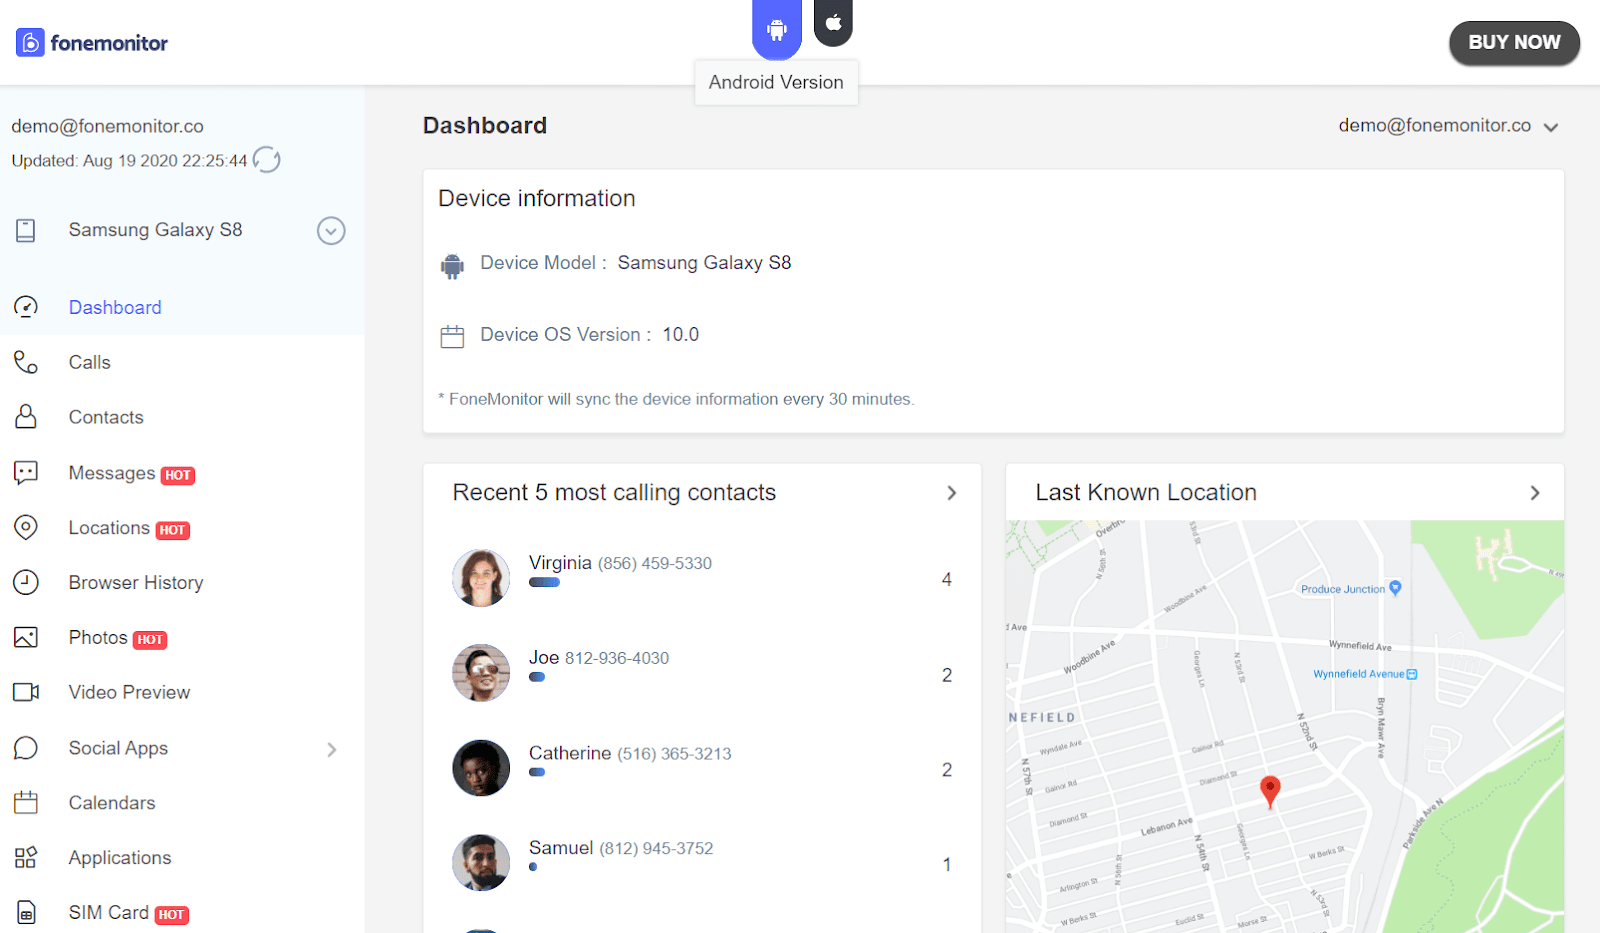 https://i.fonemonitor.co/support/wp-content/uploads/2020/08/fonemonitor-dashboard.png